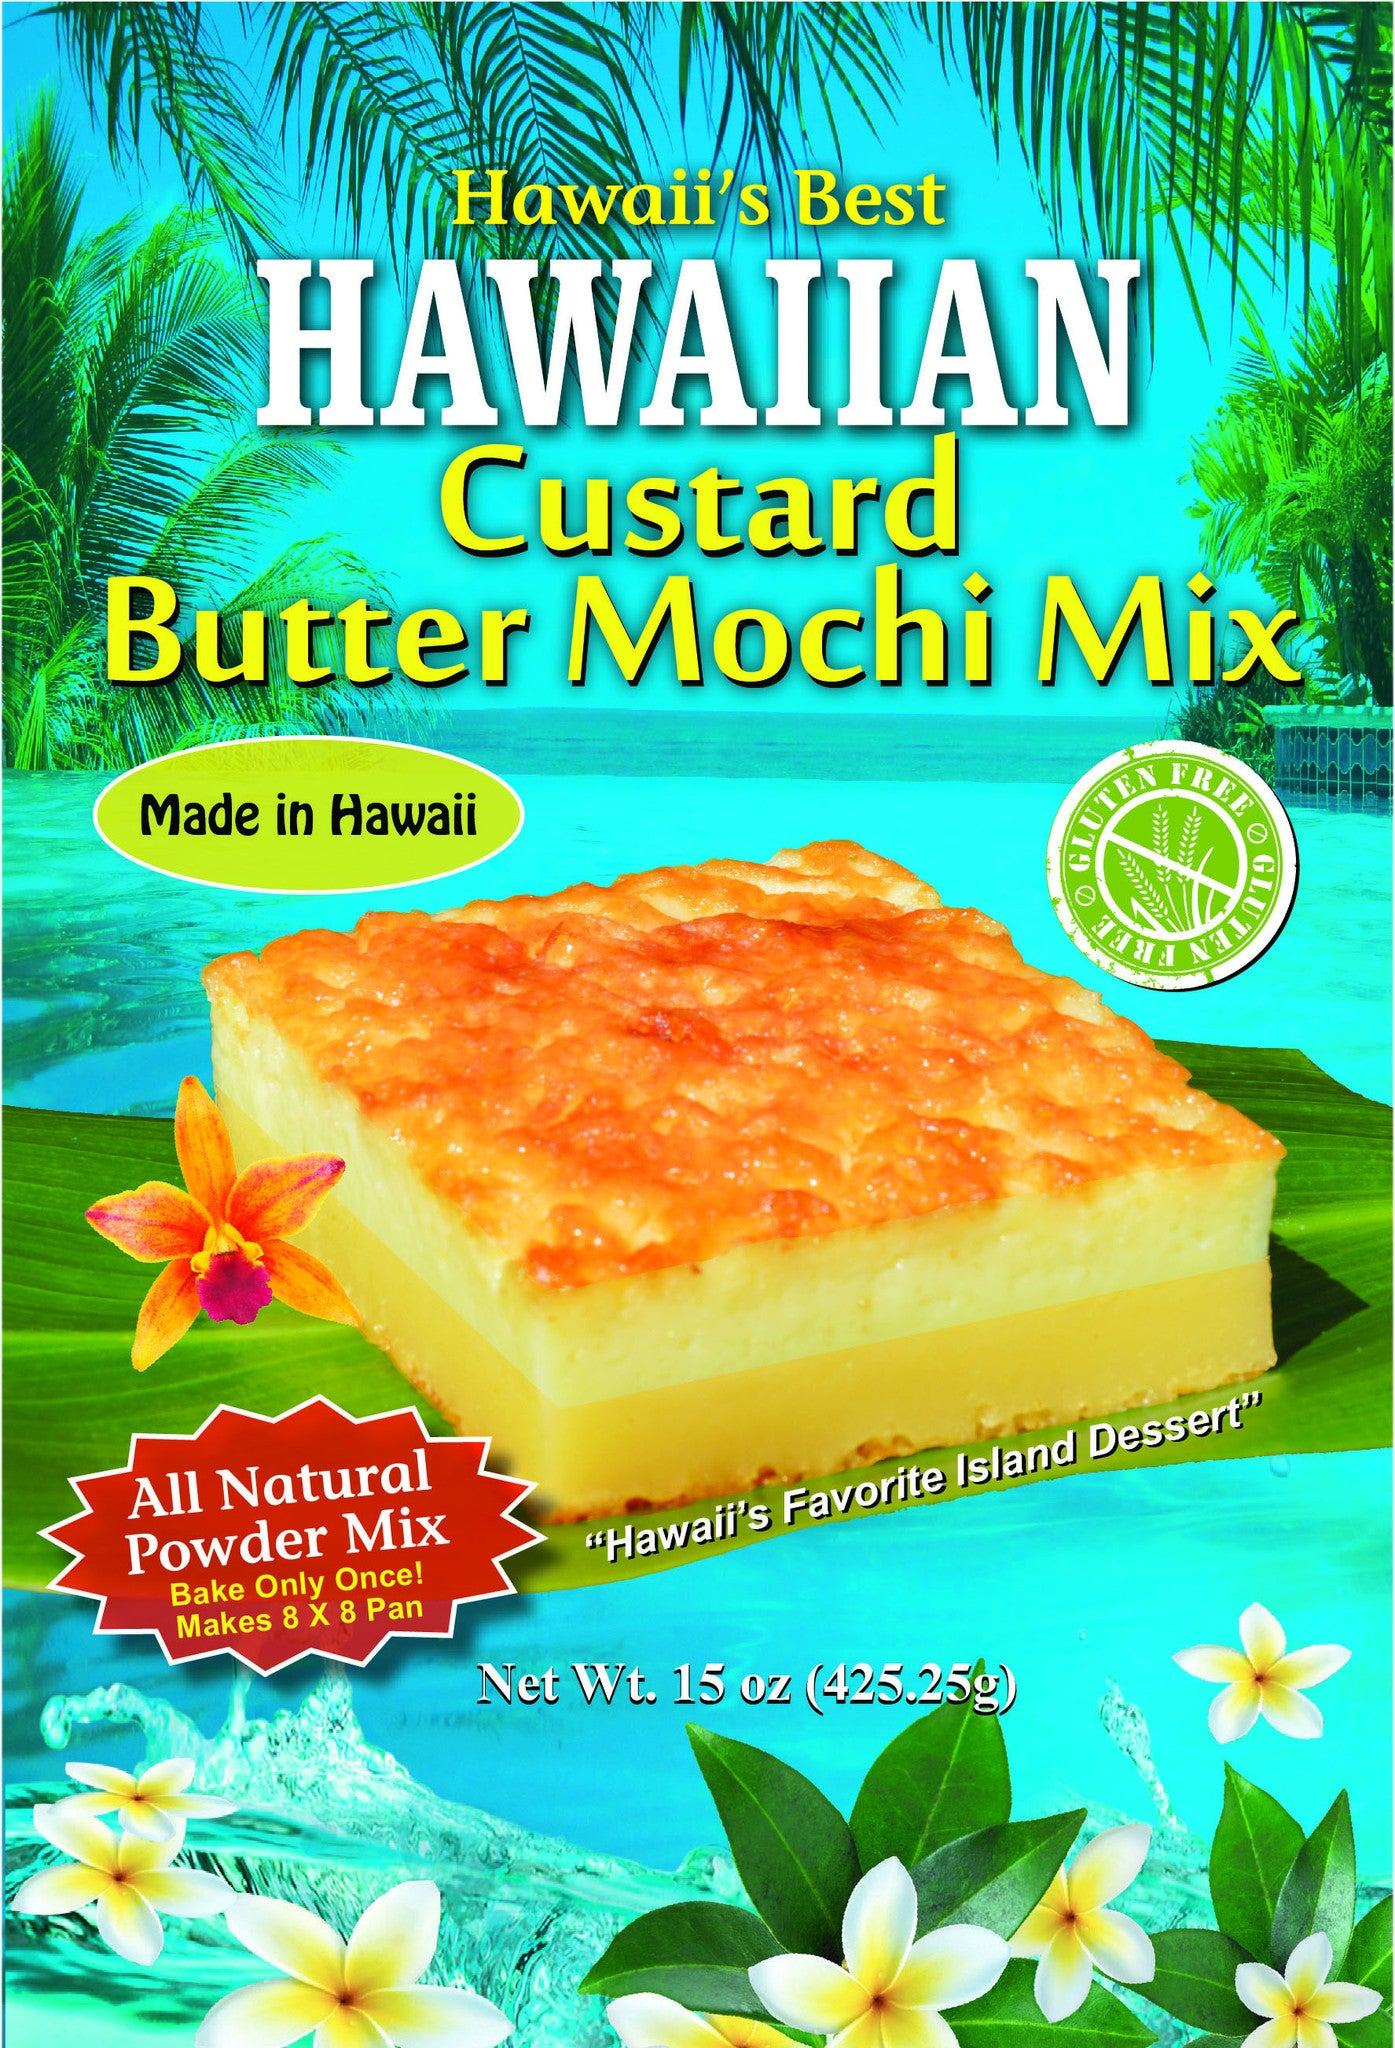 (1 BAG) CUSTARD BUTTER MOCHI MIX, Makes 8x8 pan, Gluten Free, Bake Once & Enjoy 2 Desserts, Top Layer- Custard, Bottom Layer- Butter Mochi!